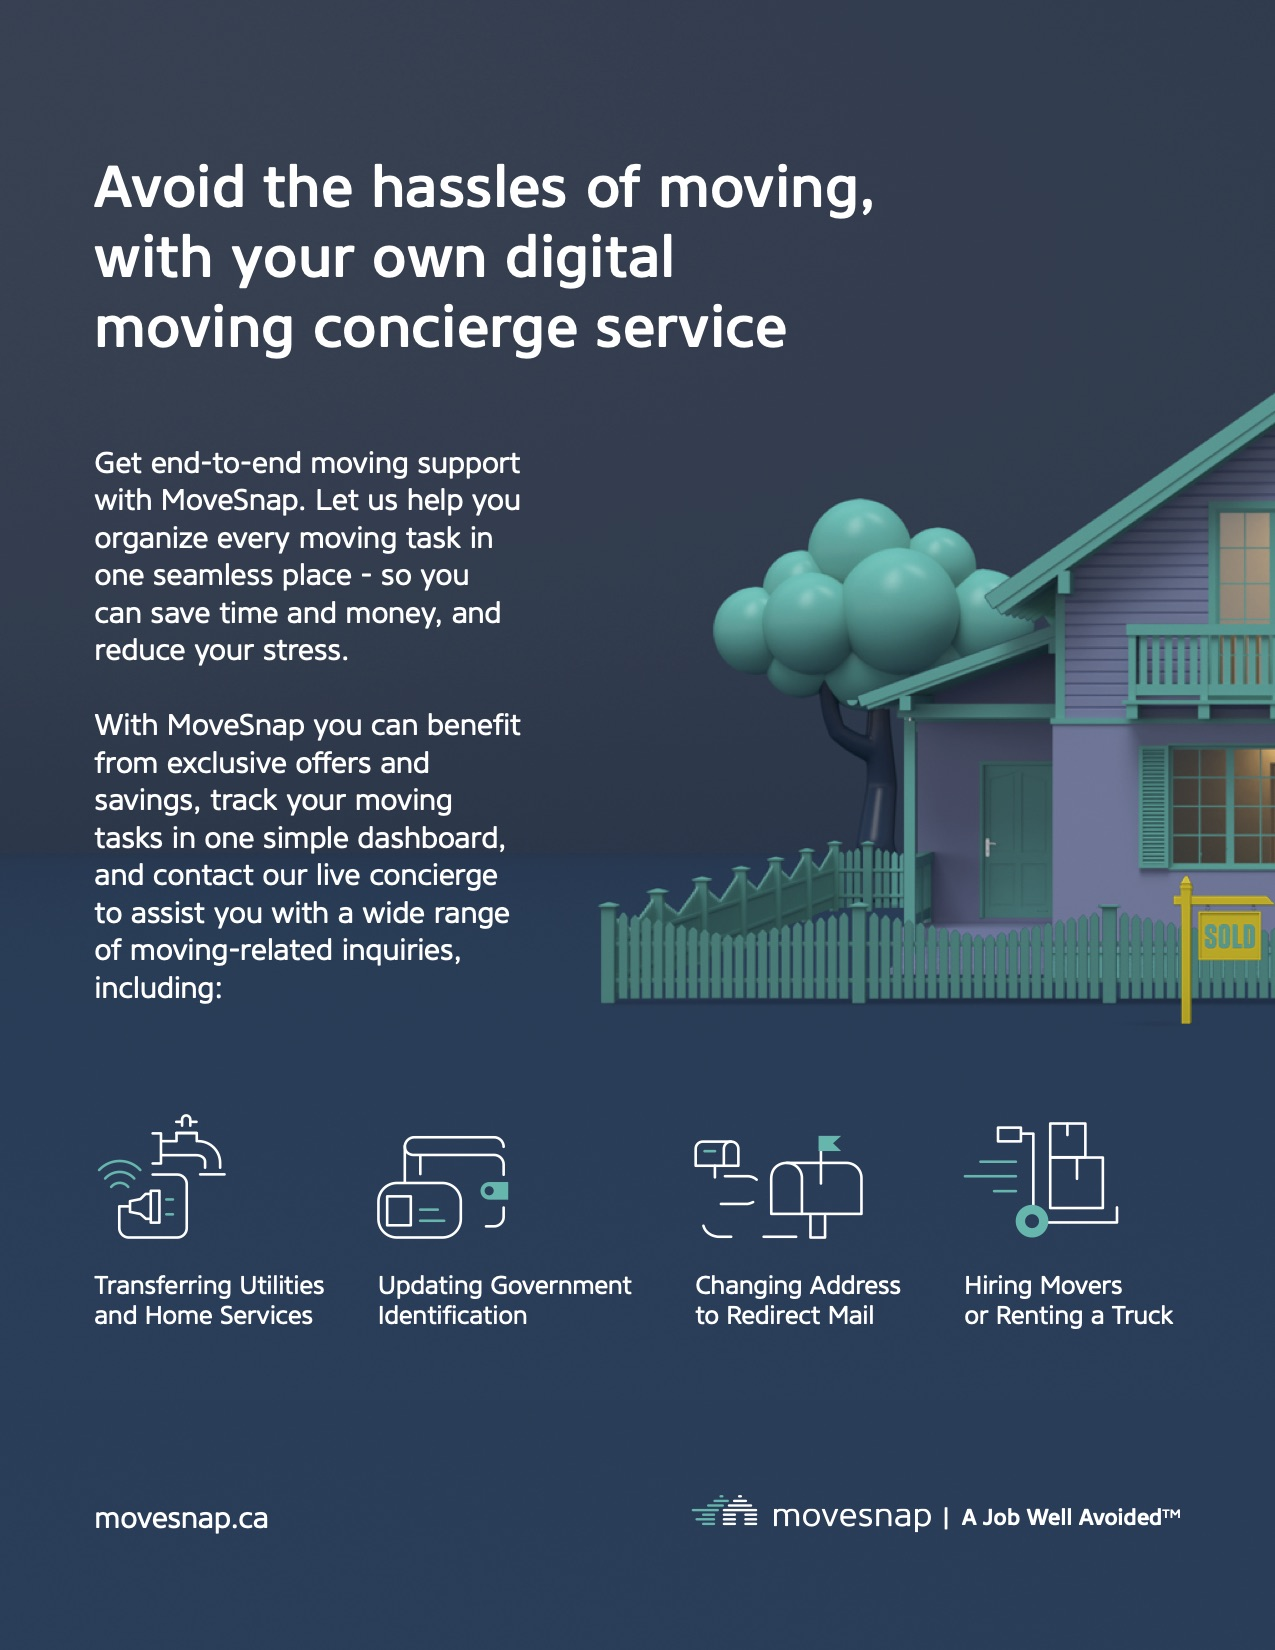 Poster explaining how MoveSnap helps people when they are moving house.